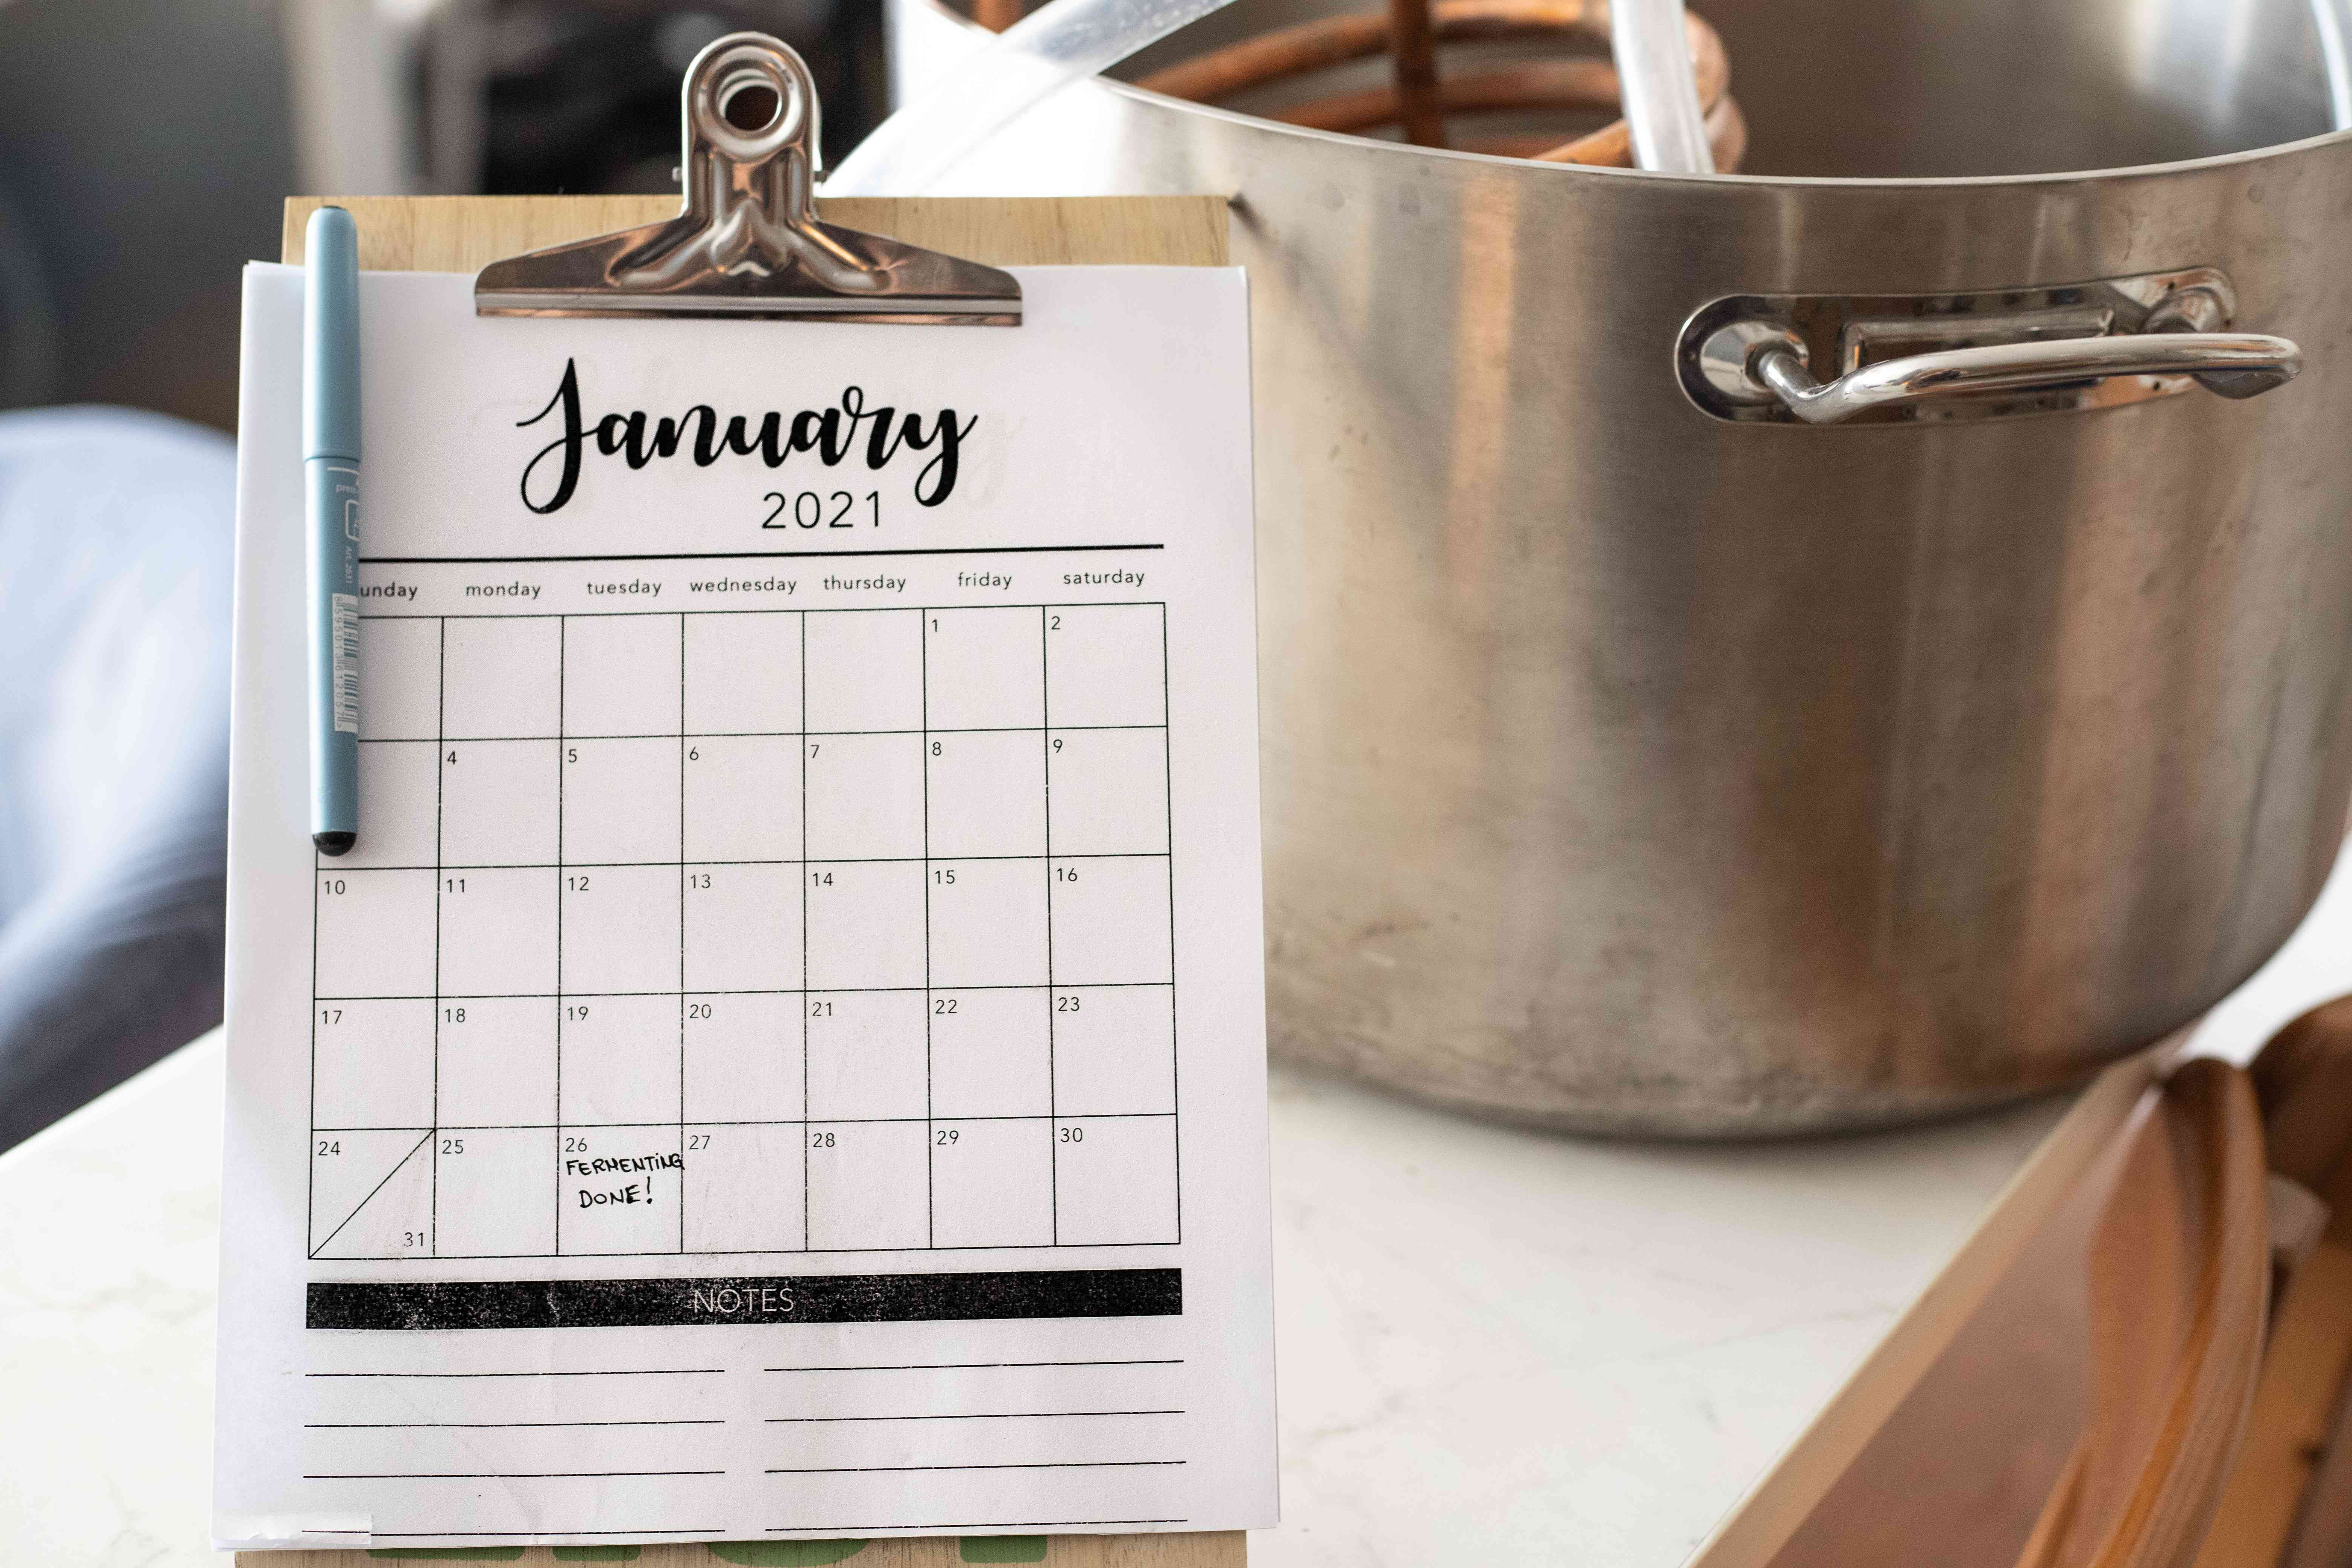 calendar with large cooking pot showing the fermentation schedule